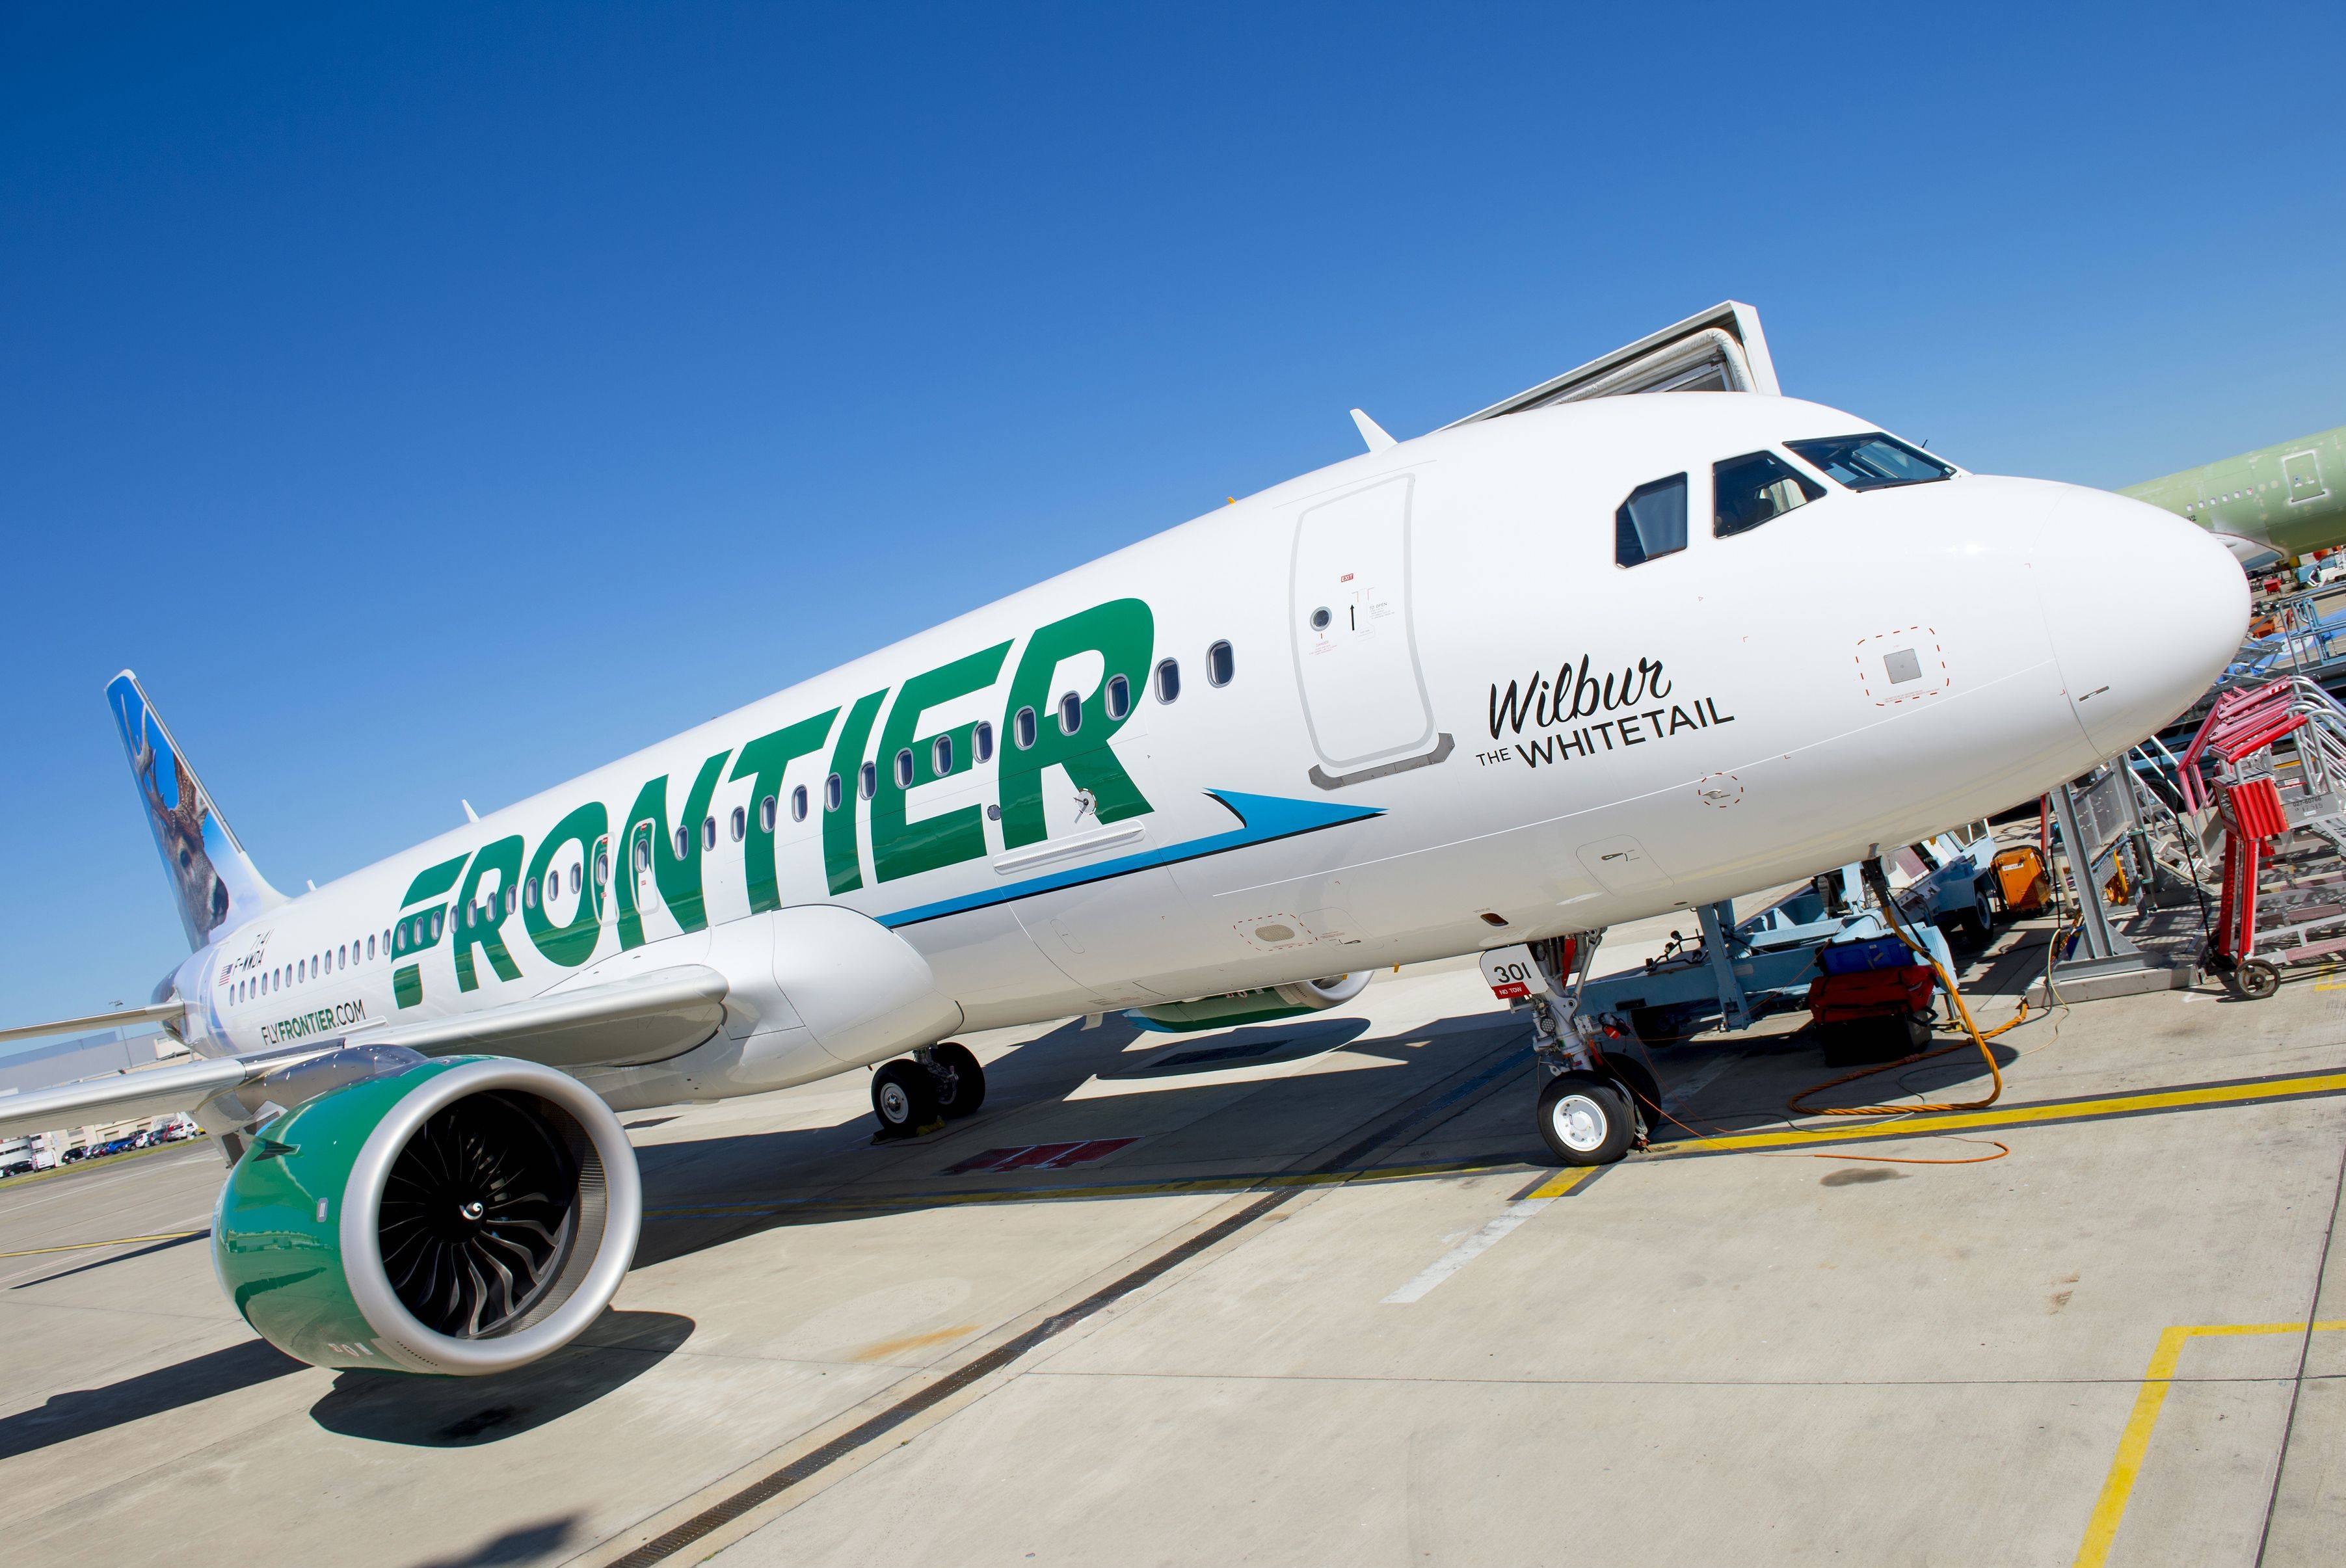 Frontier Airlines Cancellation Policy: You need to know